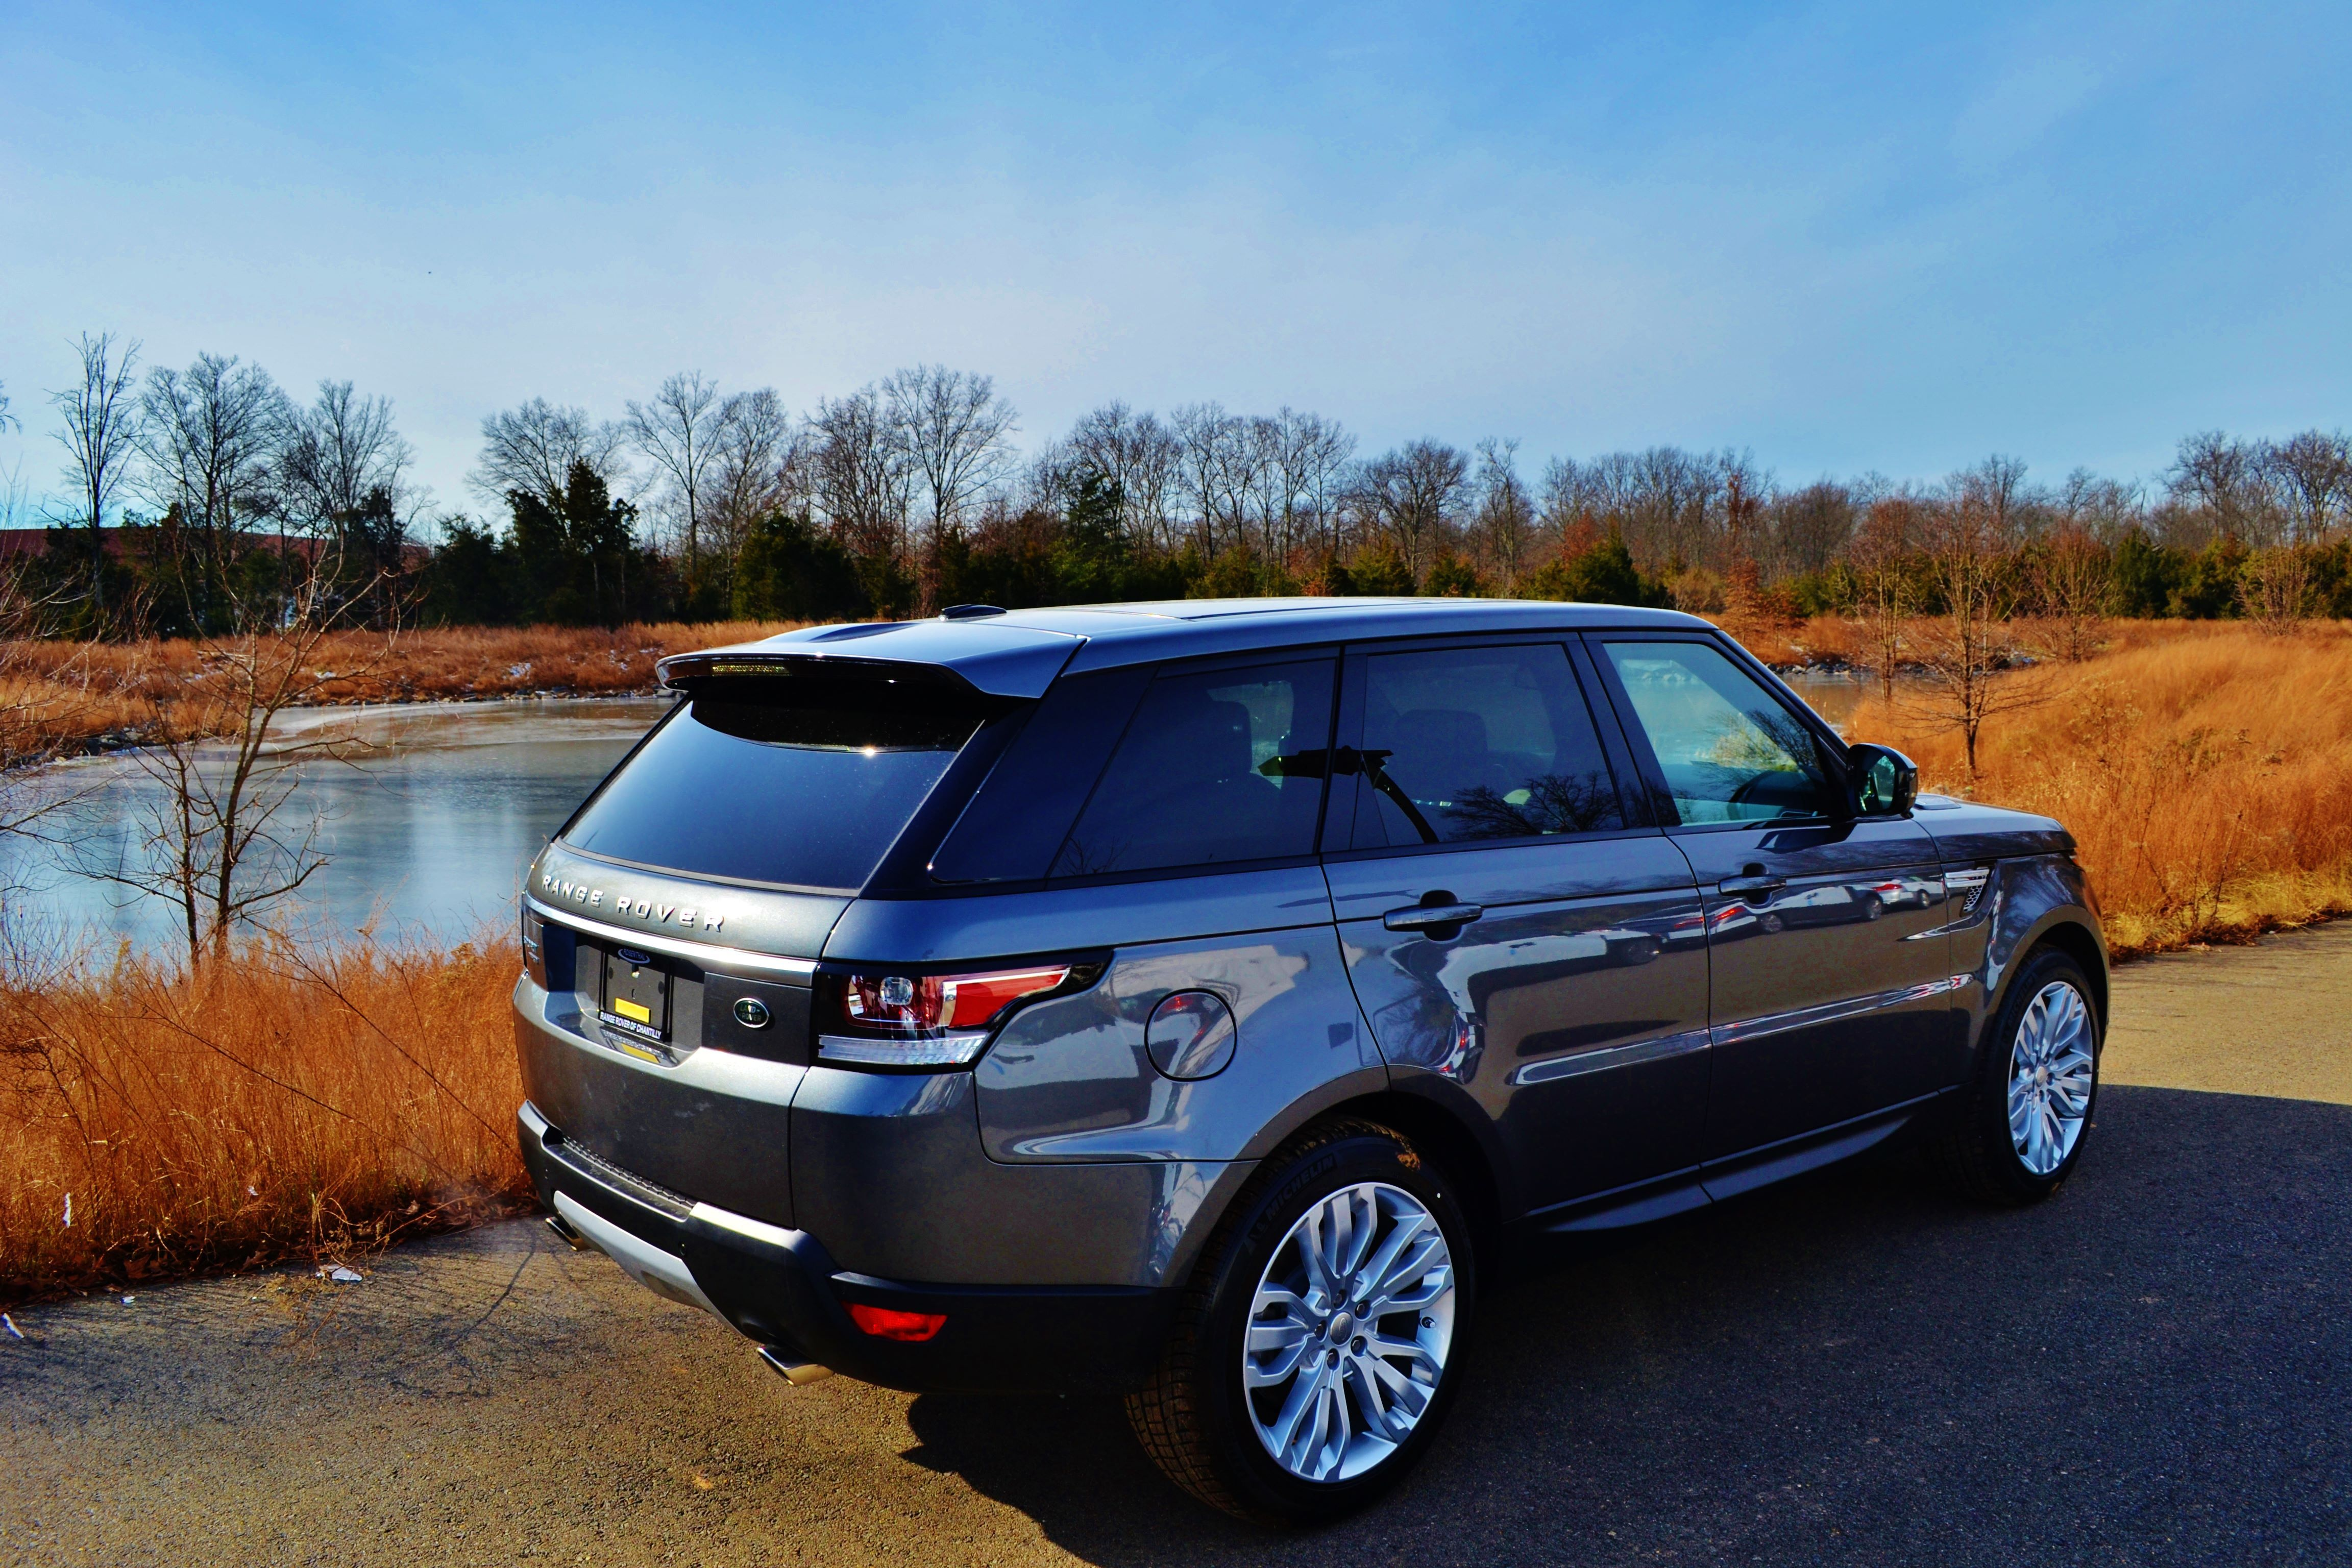 Pin By Jackie On Range Rovers Land Rovers Range Rover Supercharged Range Rover Sport Range Rover